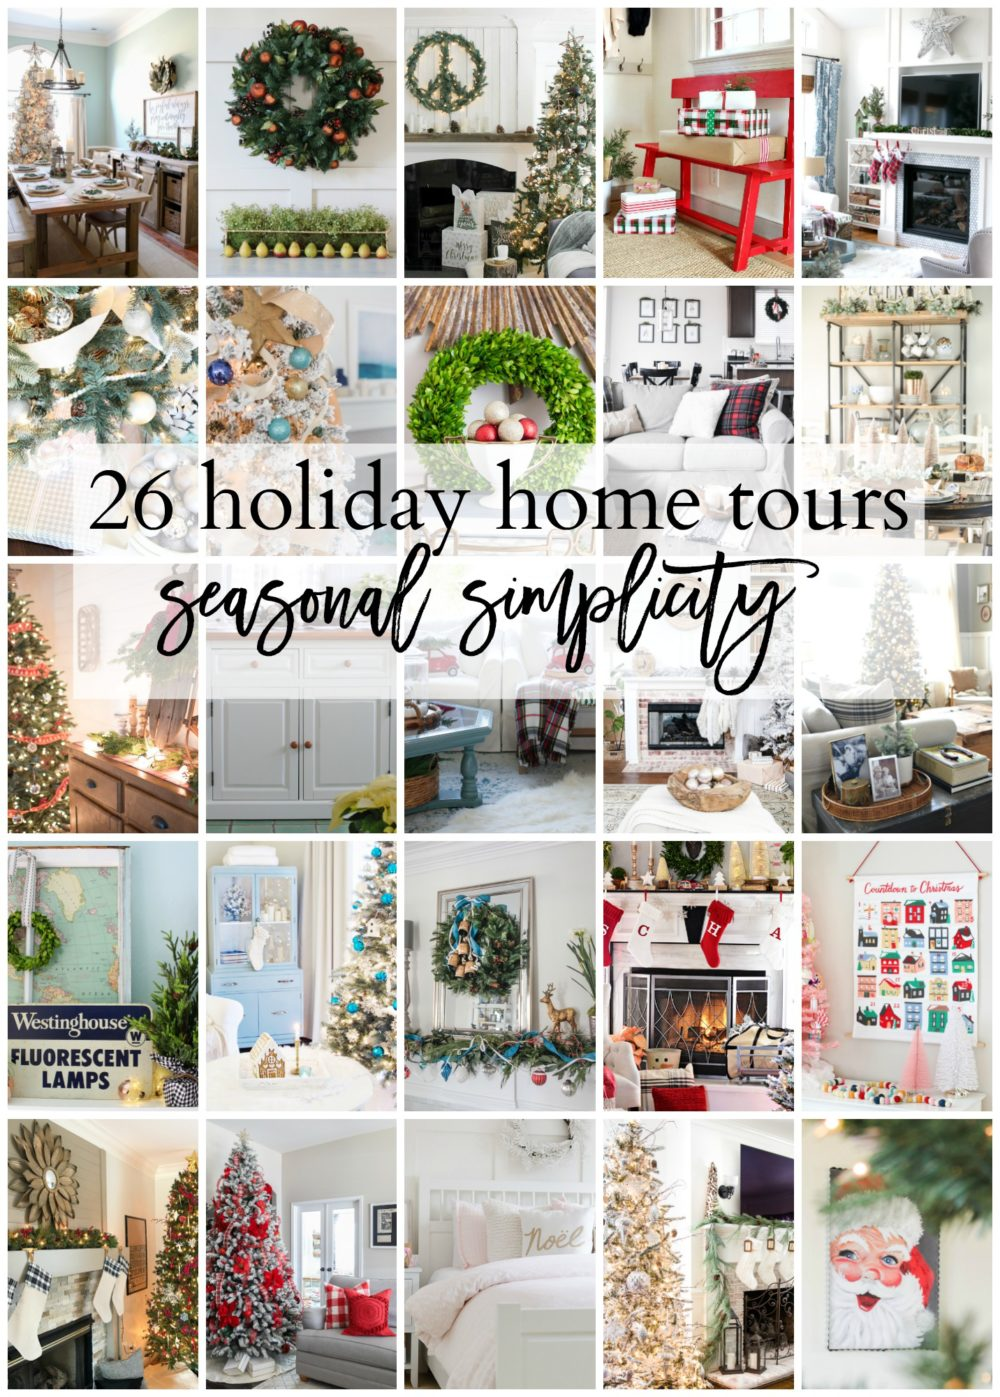 Best Holiday Home Tours with Seasonal Simplicity